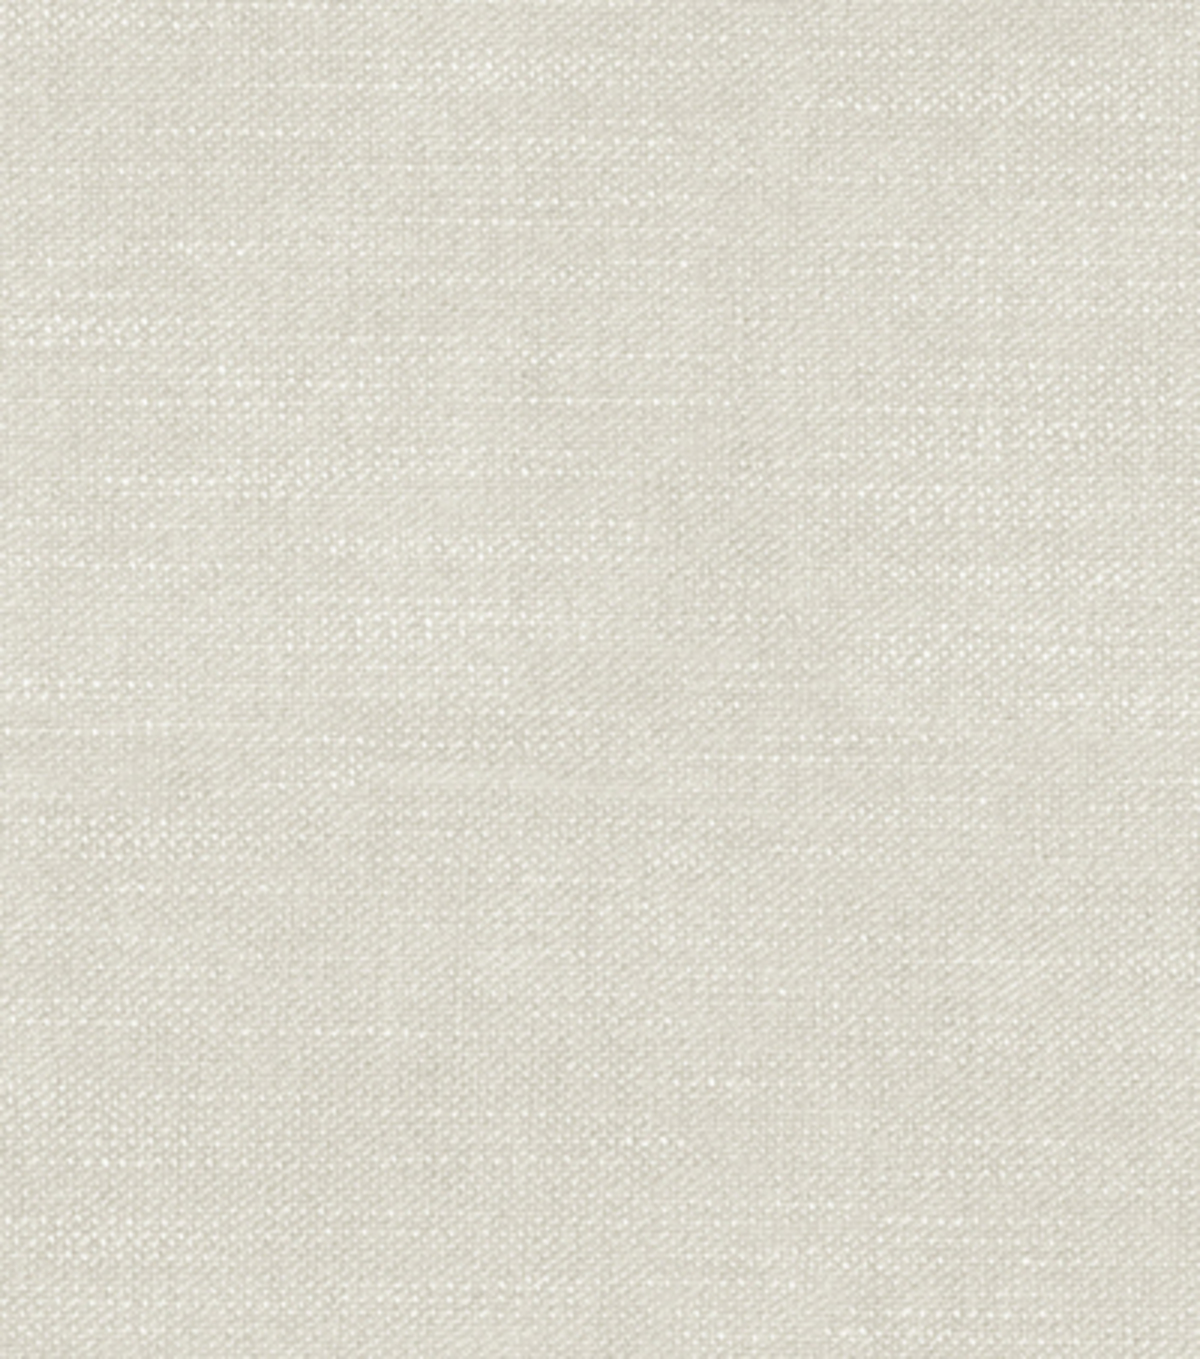 Home Decor 8\u0022x8\u0022 Fabric Swatch-Upholstery Fabric-Waverly Spritz/Shimmer